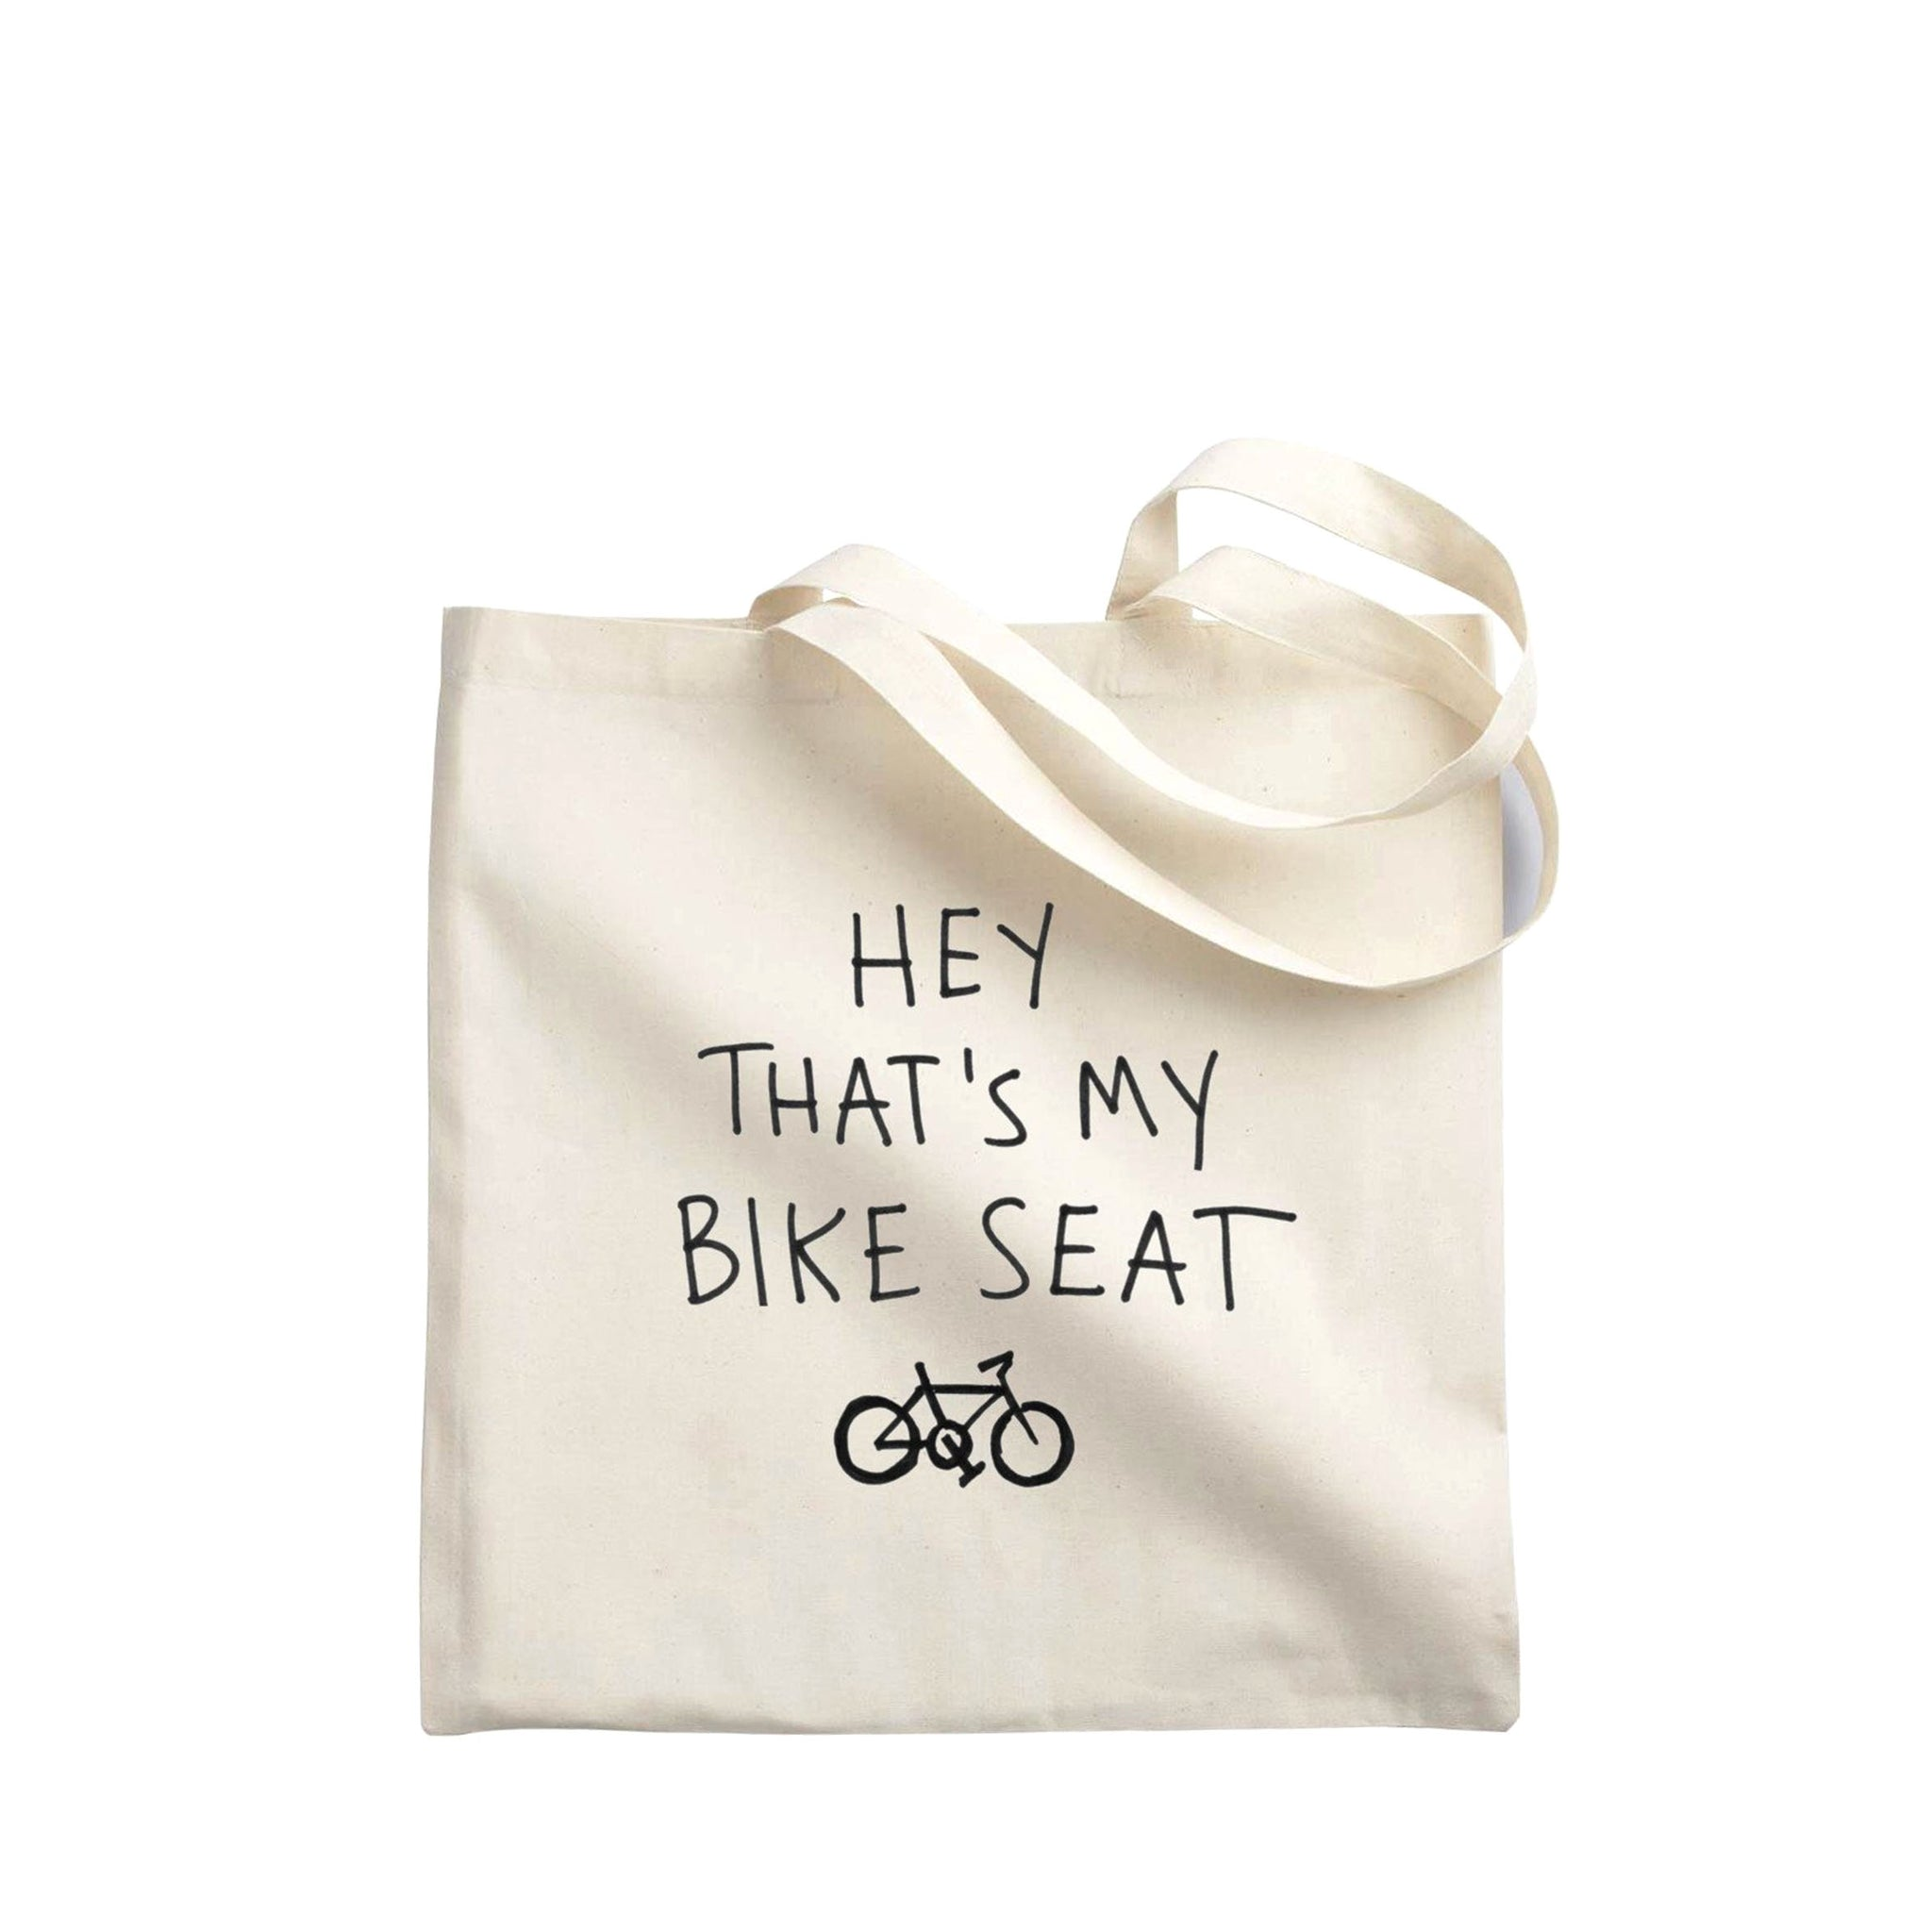 Bike Seat. The Tote.